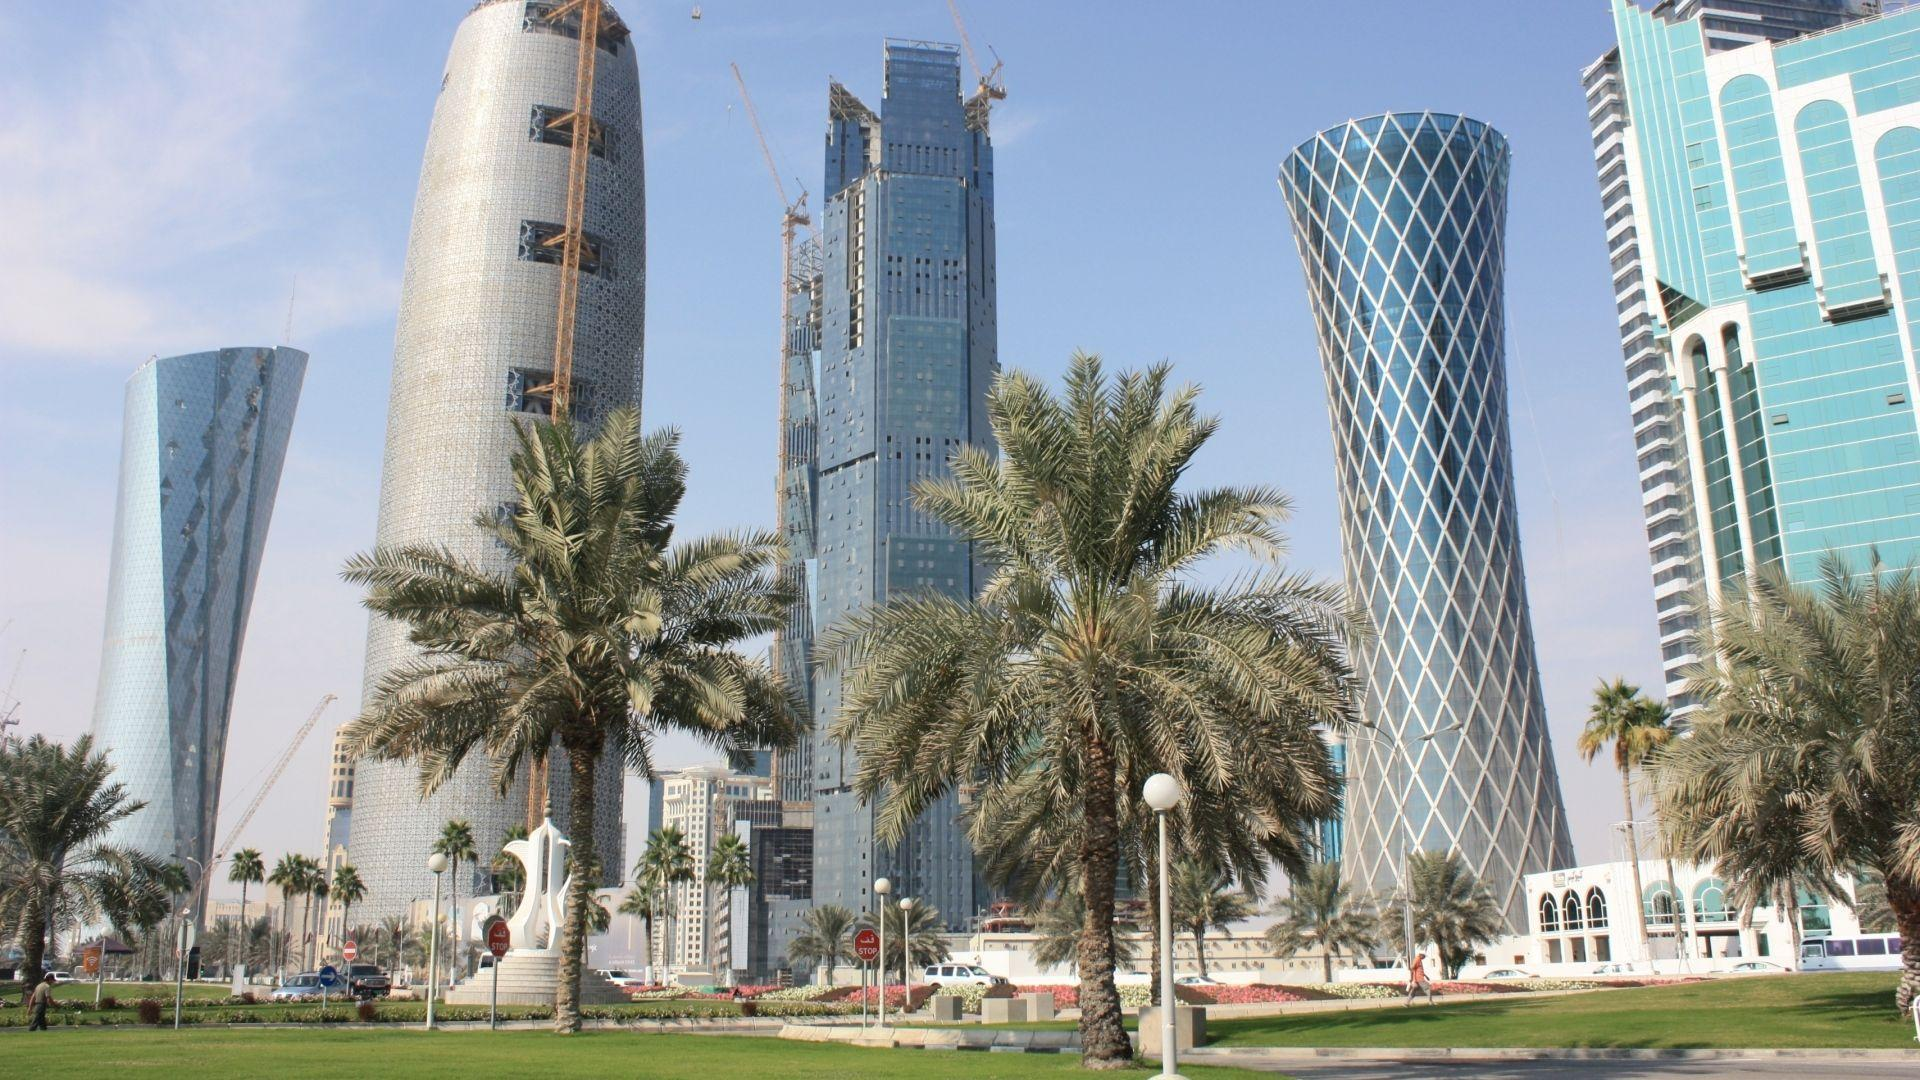 Download Wallpapers 1920x1080 Qatar, Doha, City, Buildings, Palm